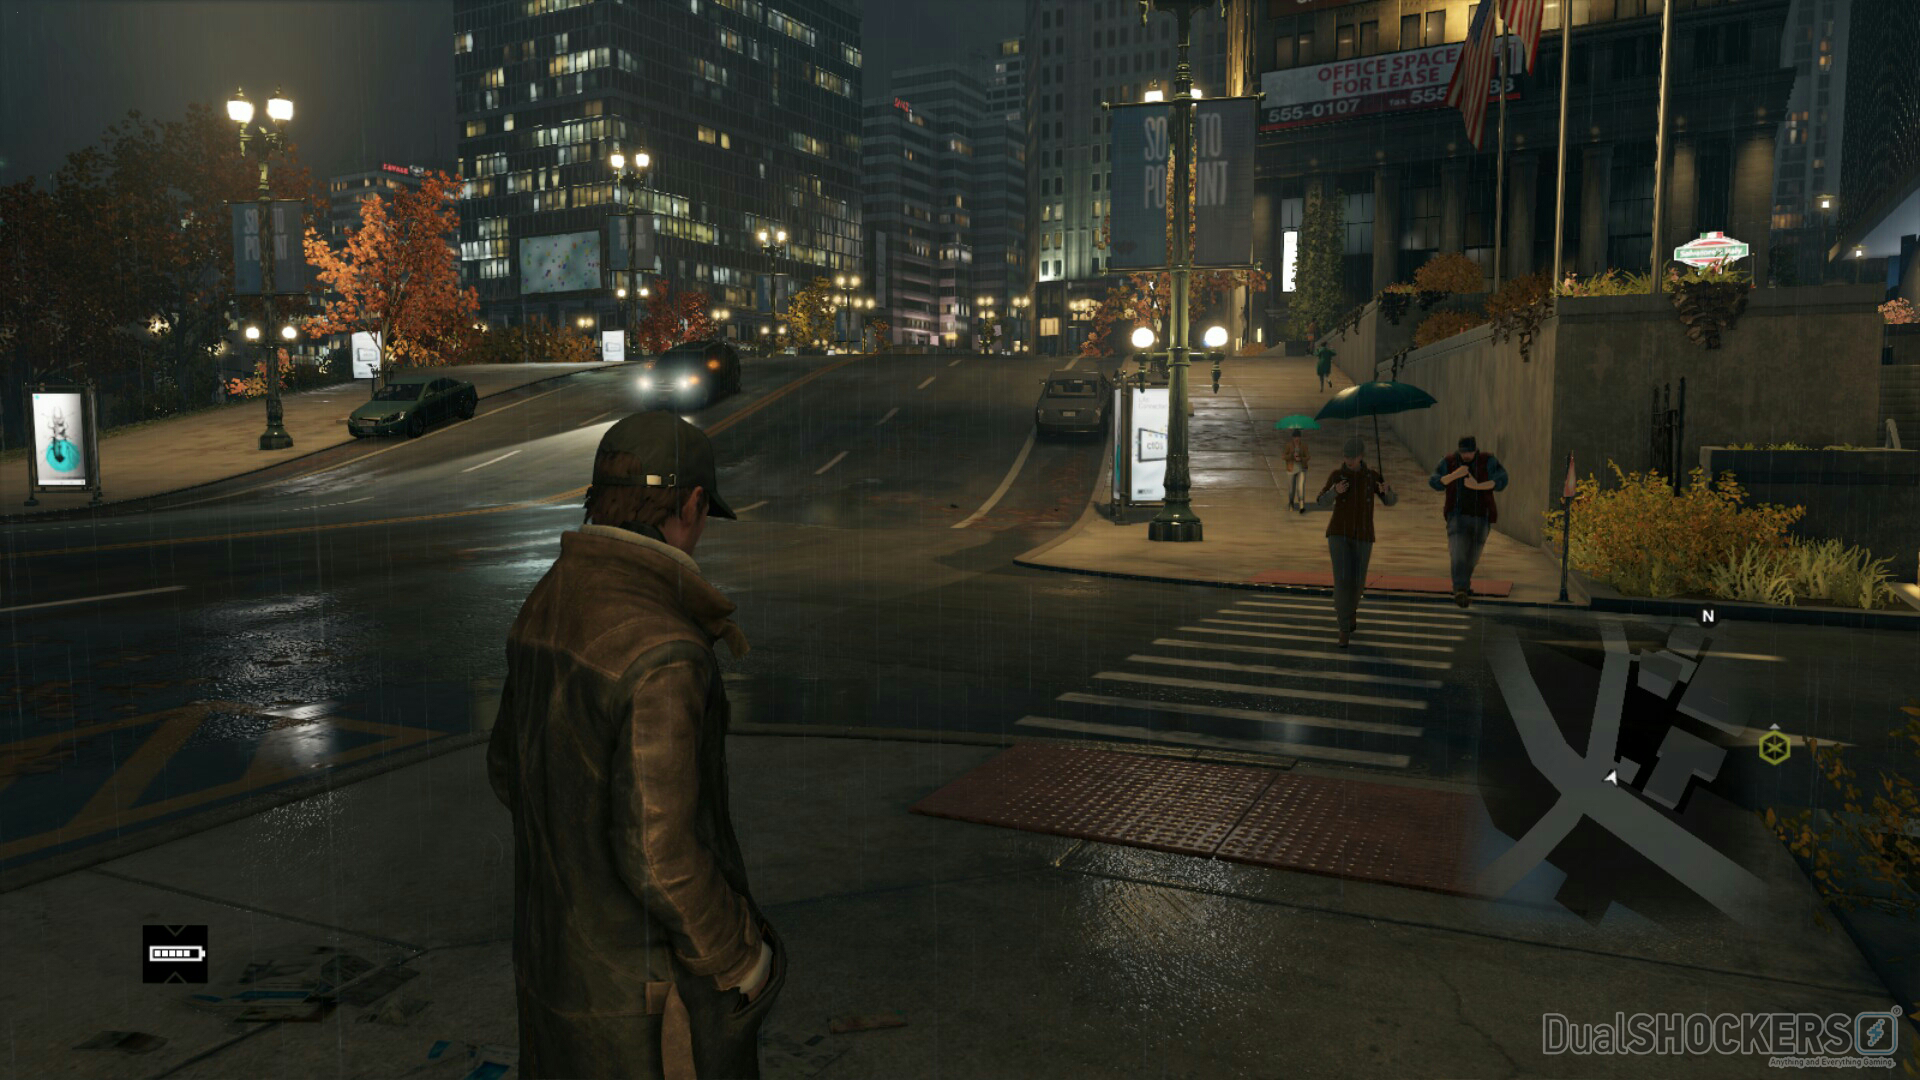 Watch_Dogs_Beta_PS4-4.png